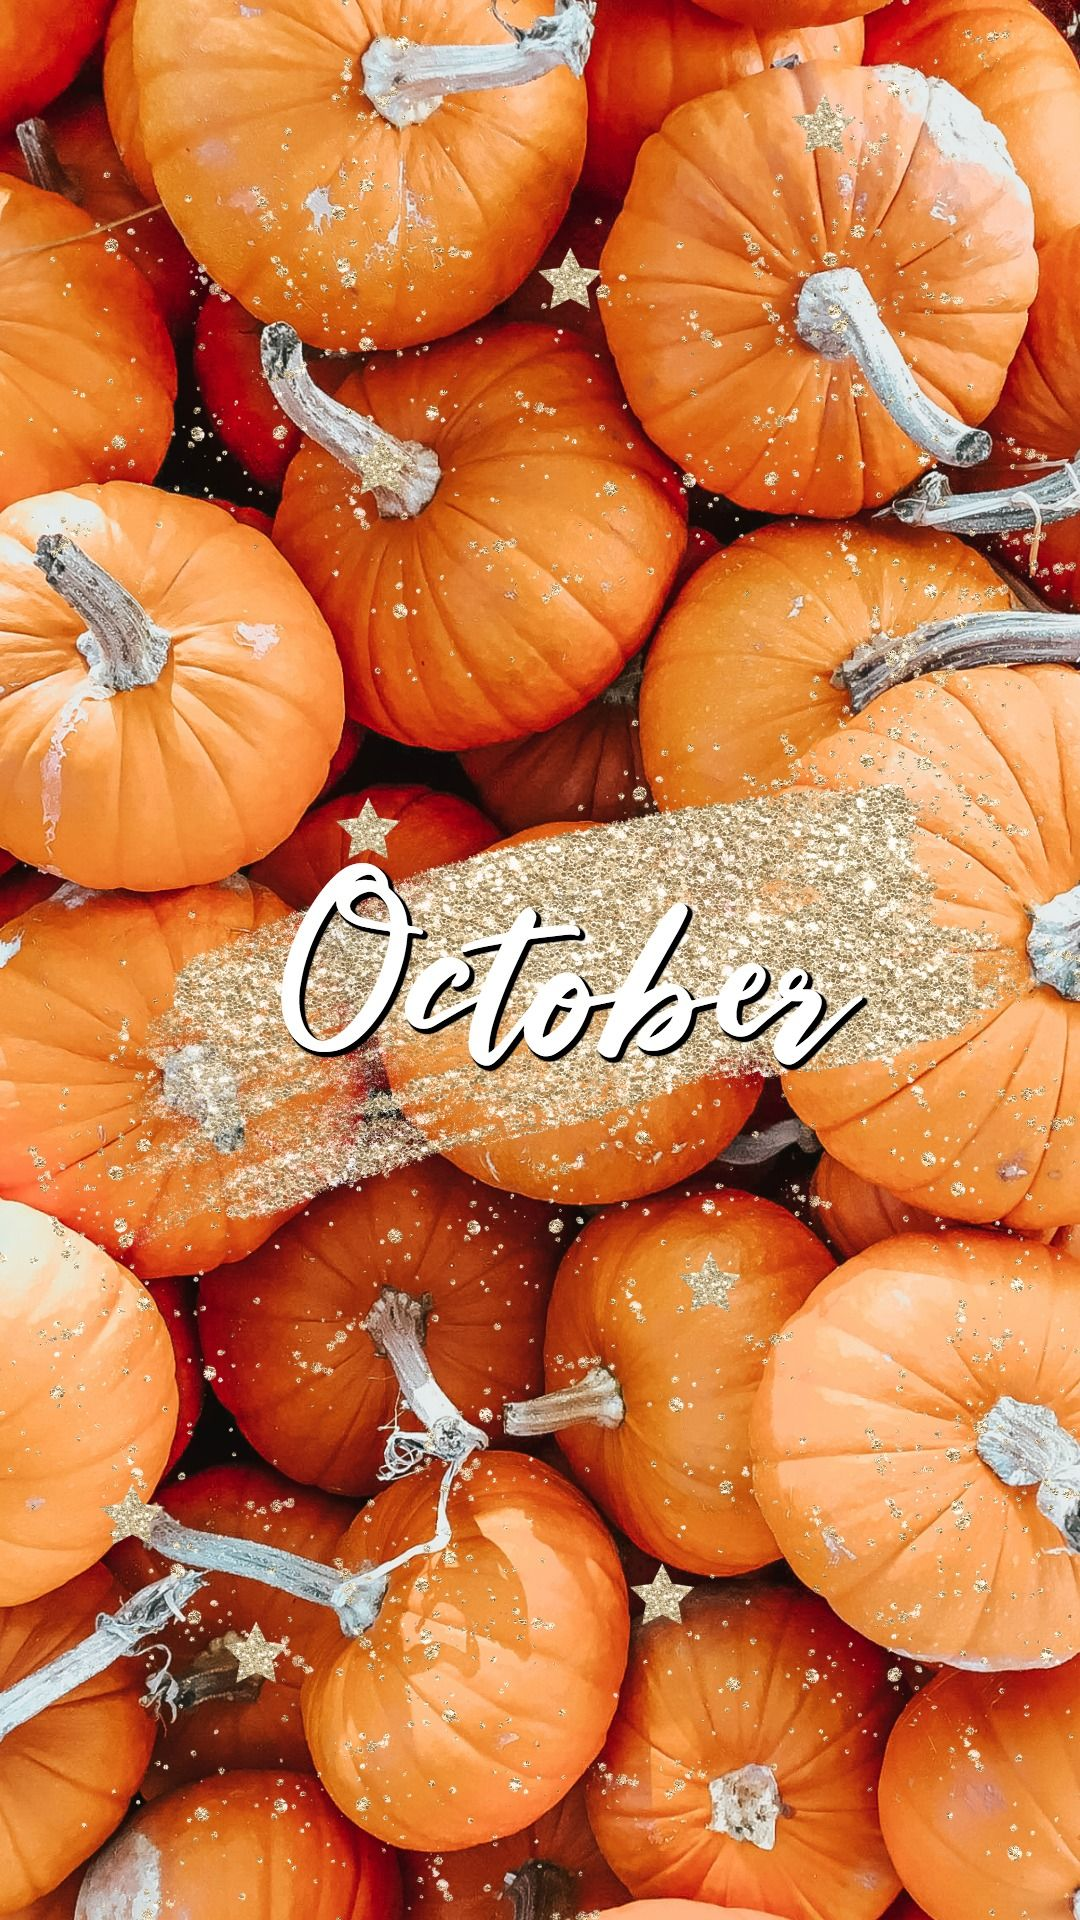 October Phone Wallpapers   Top Free October Phone Backgrounds ...